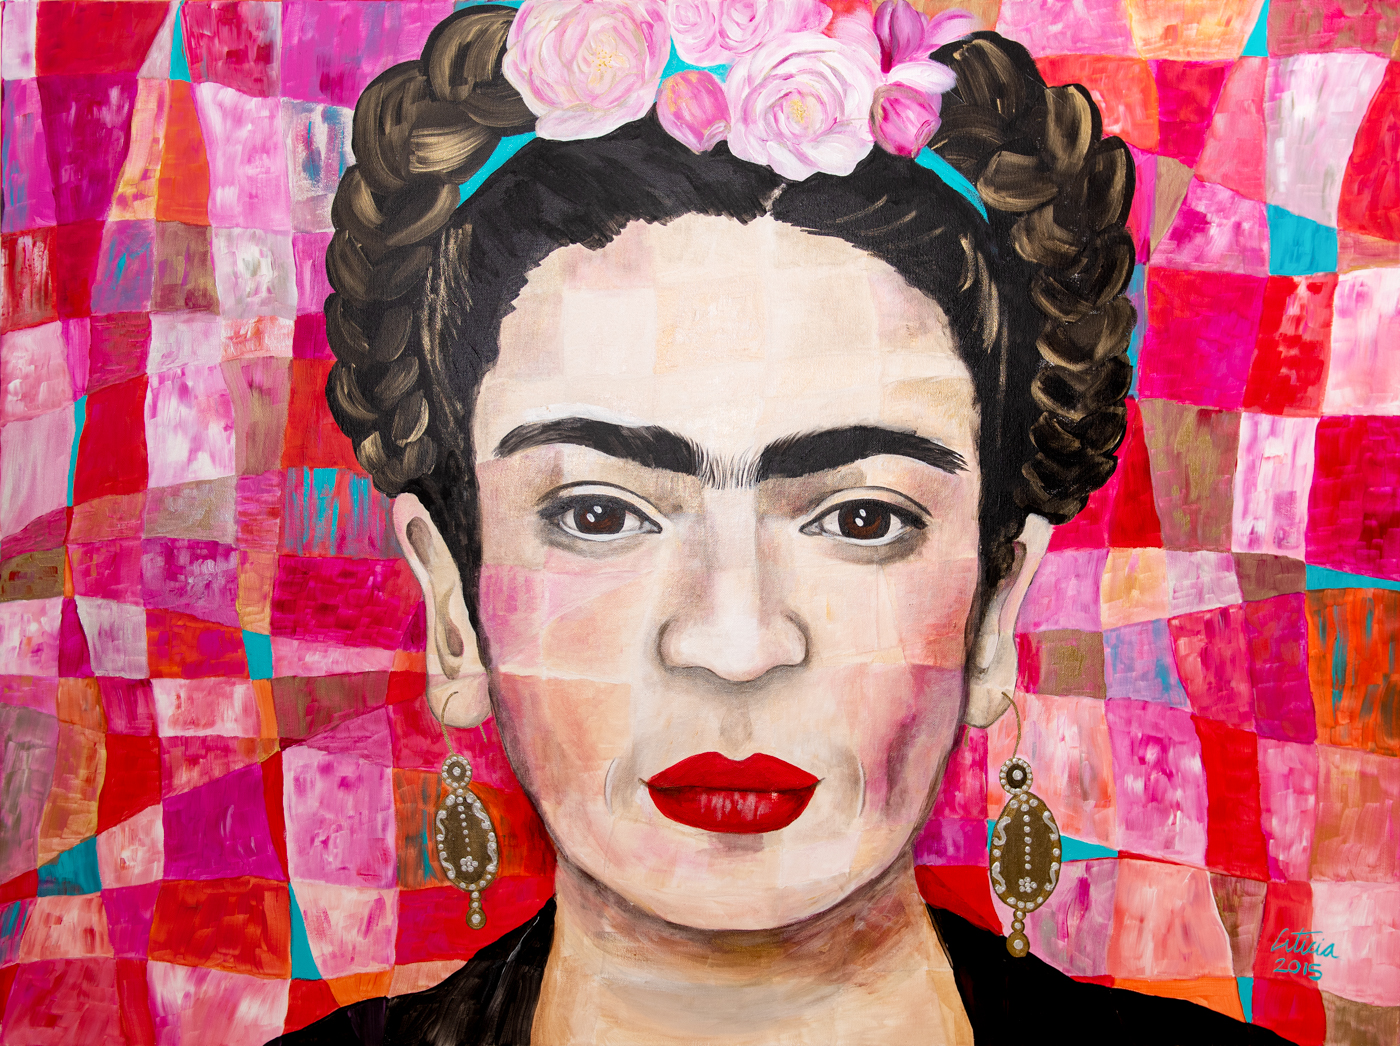 Leticia Alvarez Exhibition - Frida Kahlo